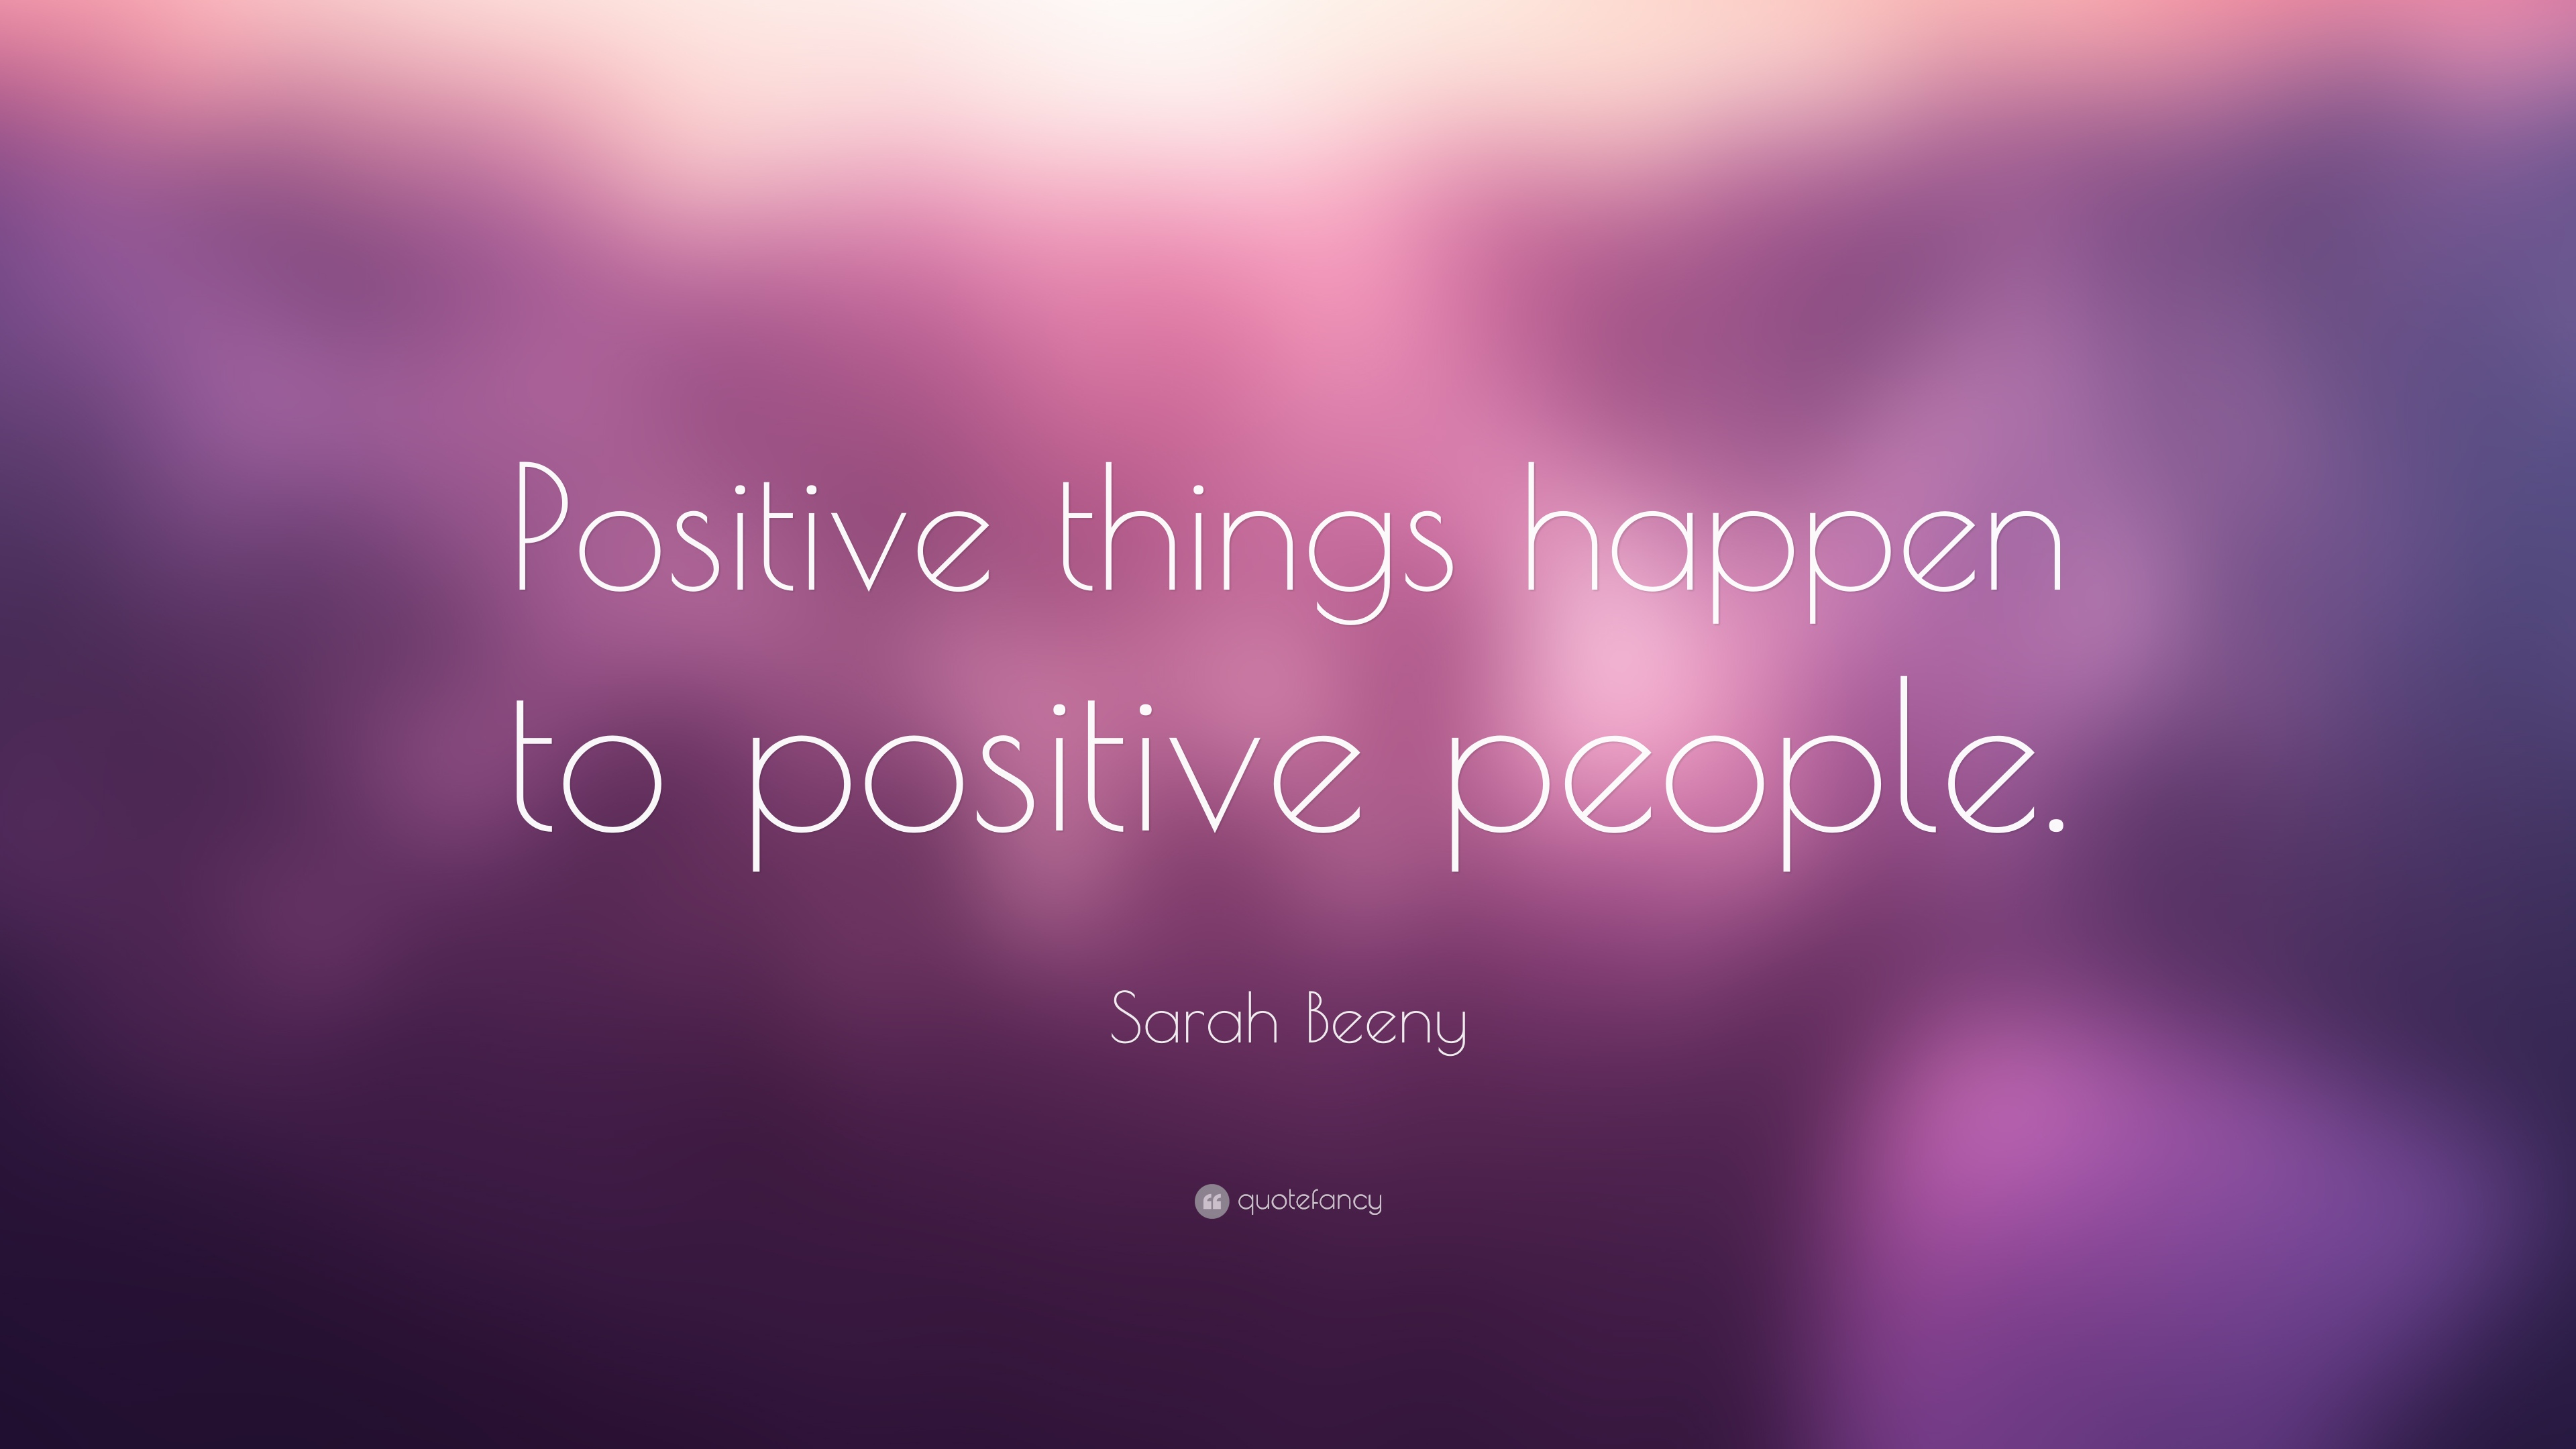 Quotes Positive Sarah Beeny Quotes 11 Wallpapers  Quotefancy